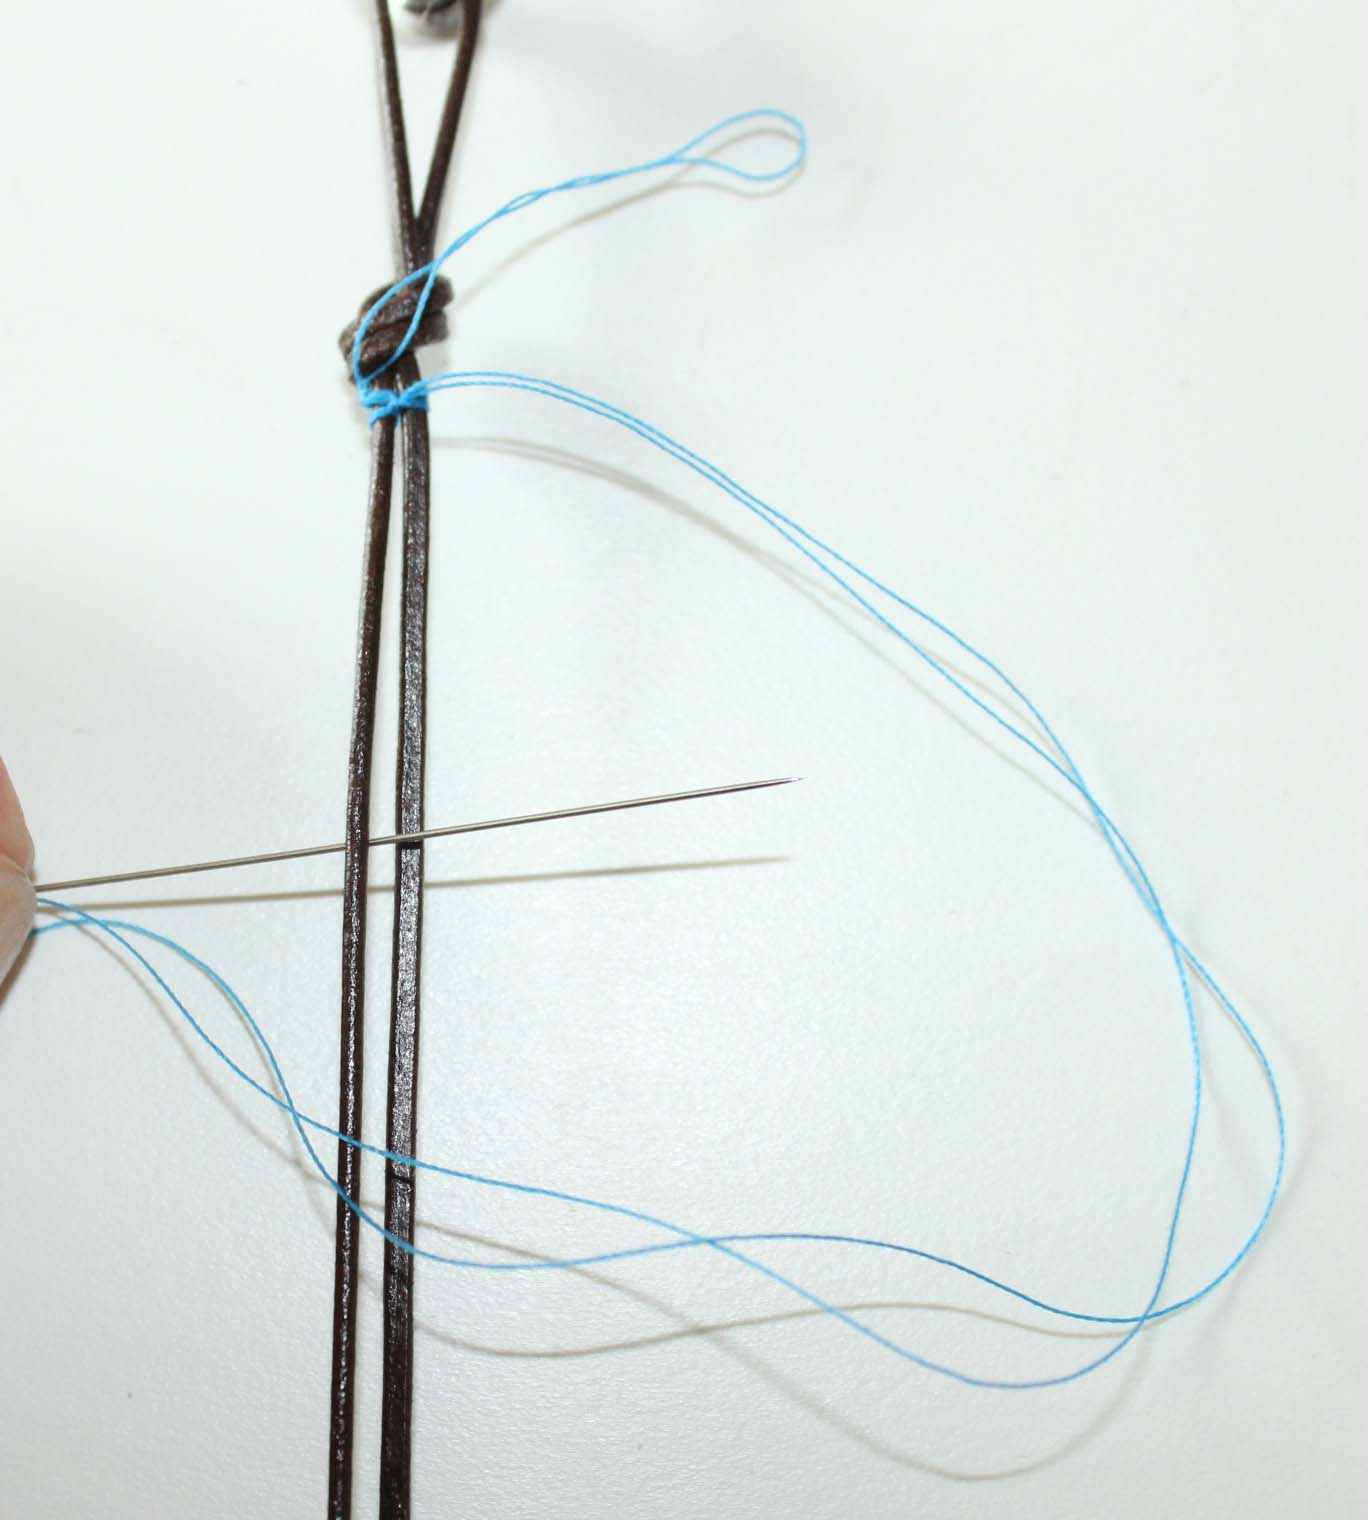 Adding thread to leather by looping over, under and between leather cords